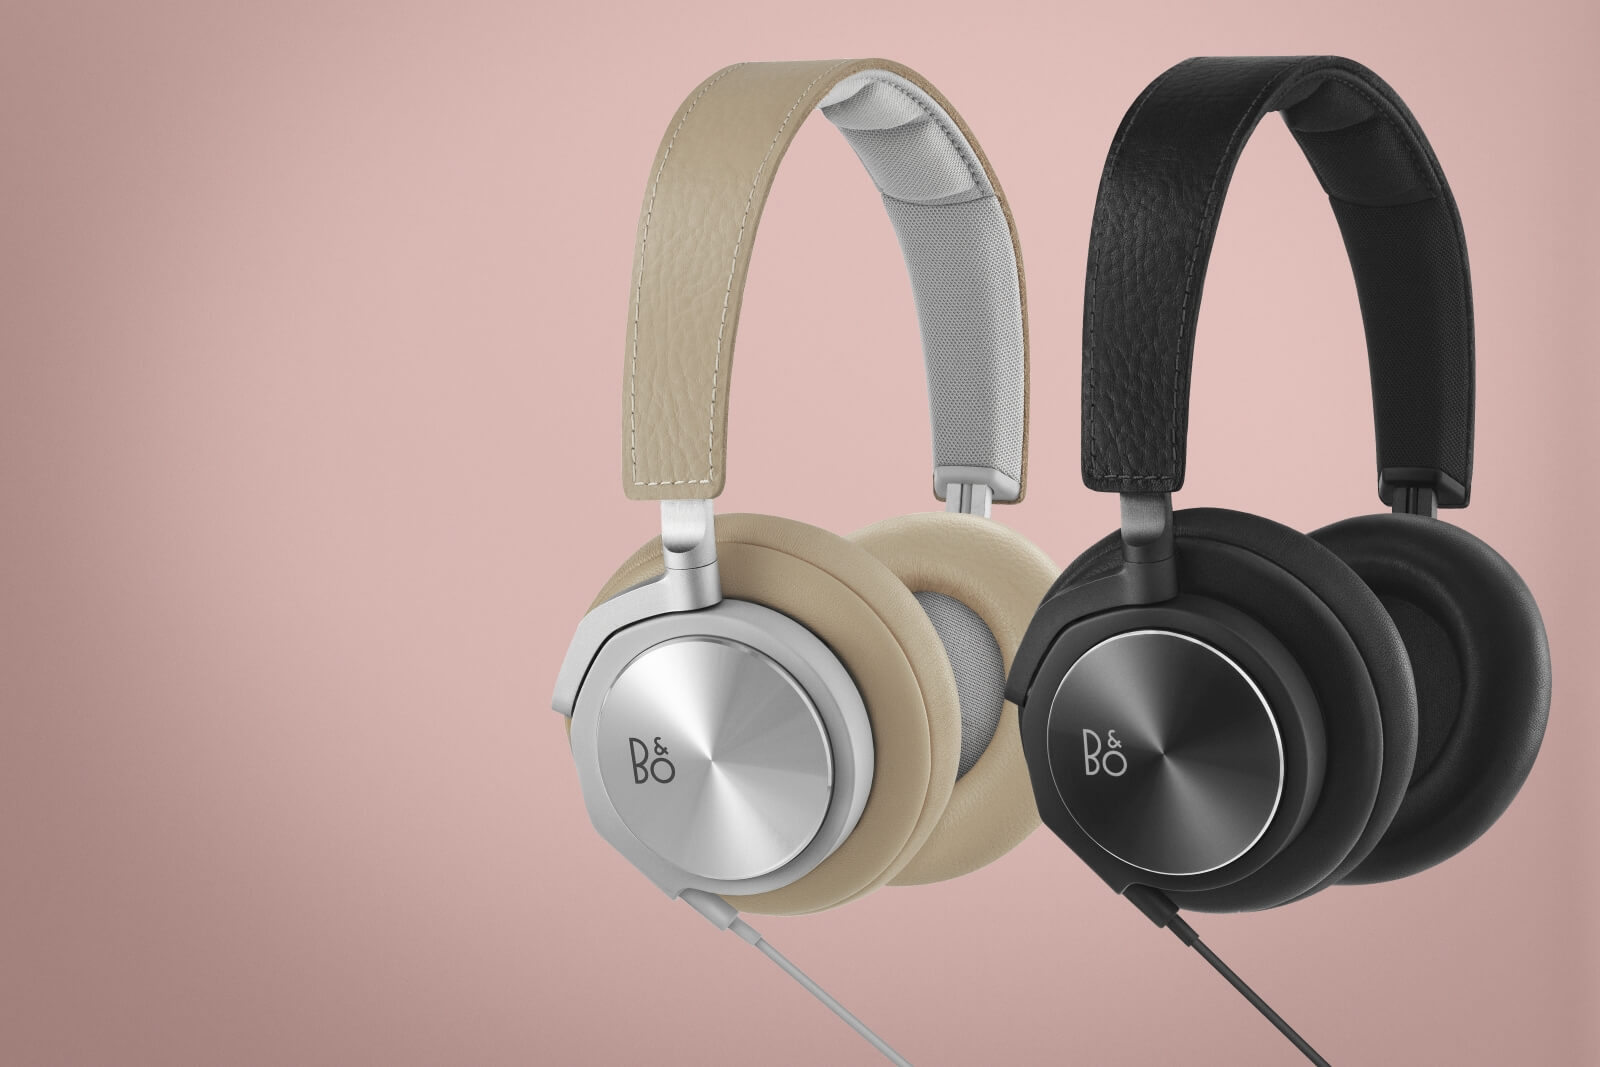 BeoPlay H6 MKII - Premium Over-Ear headphones with outstanding clear and powerful sound